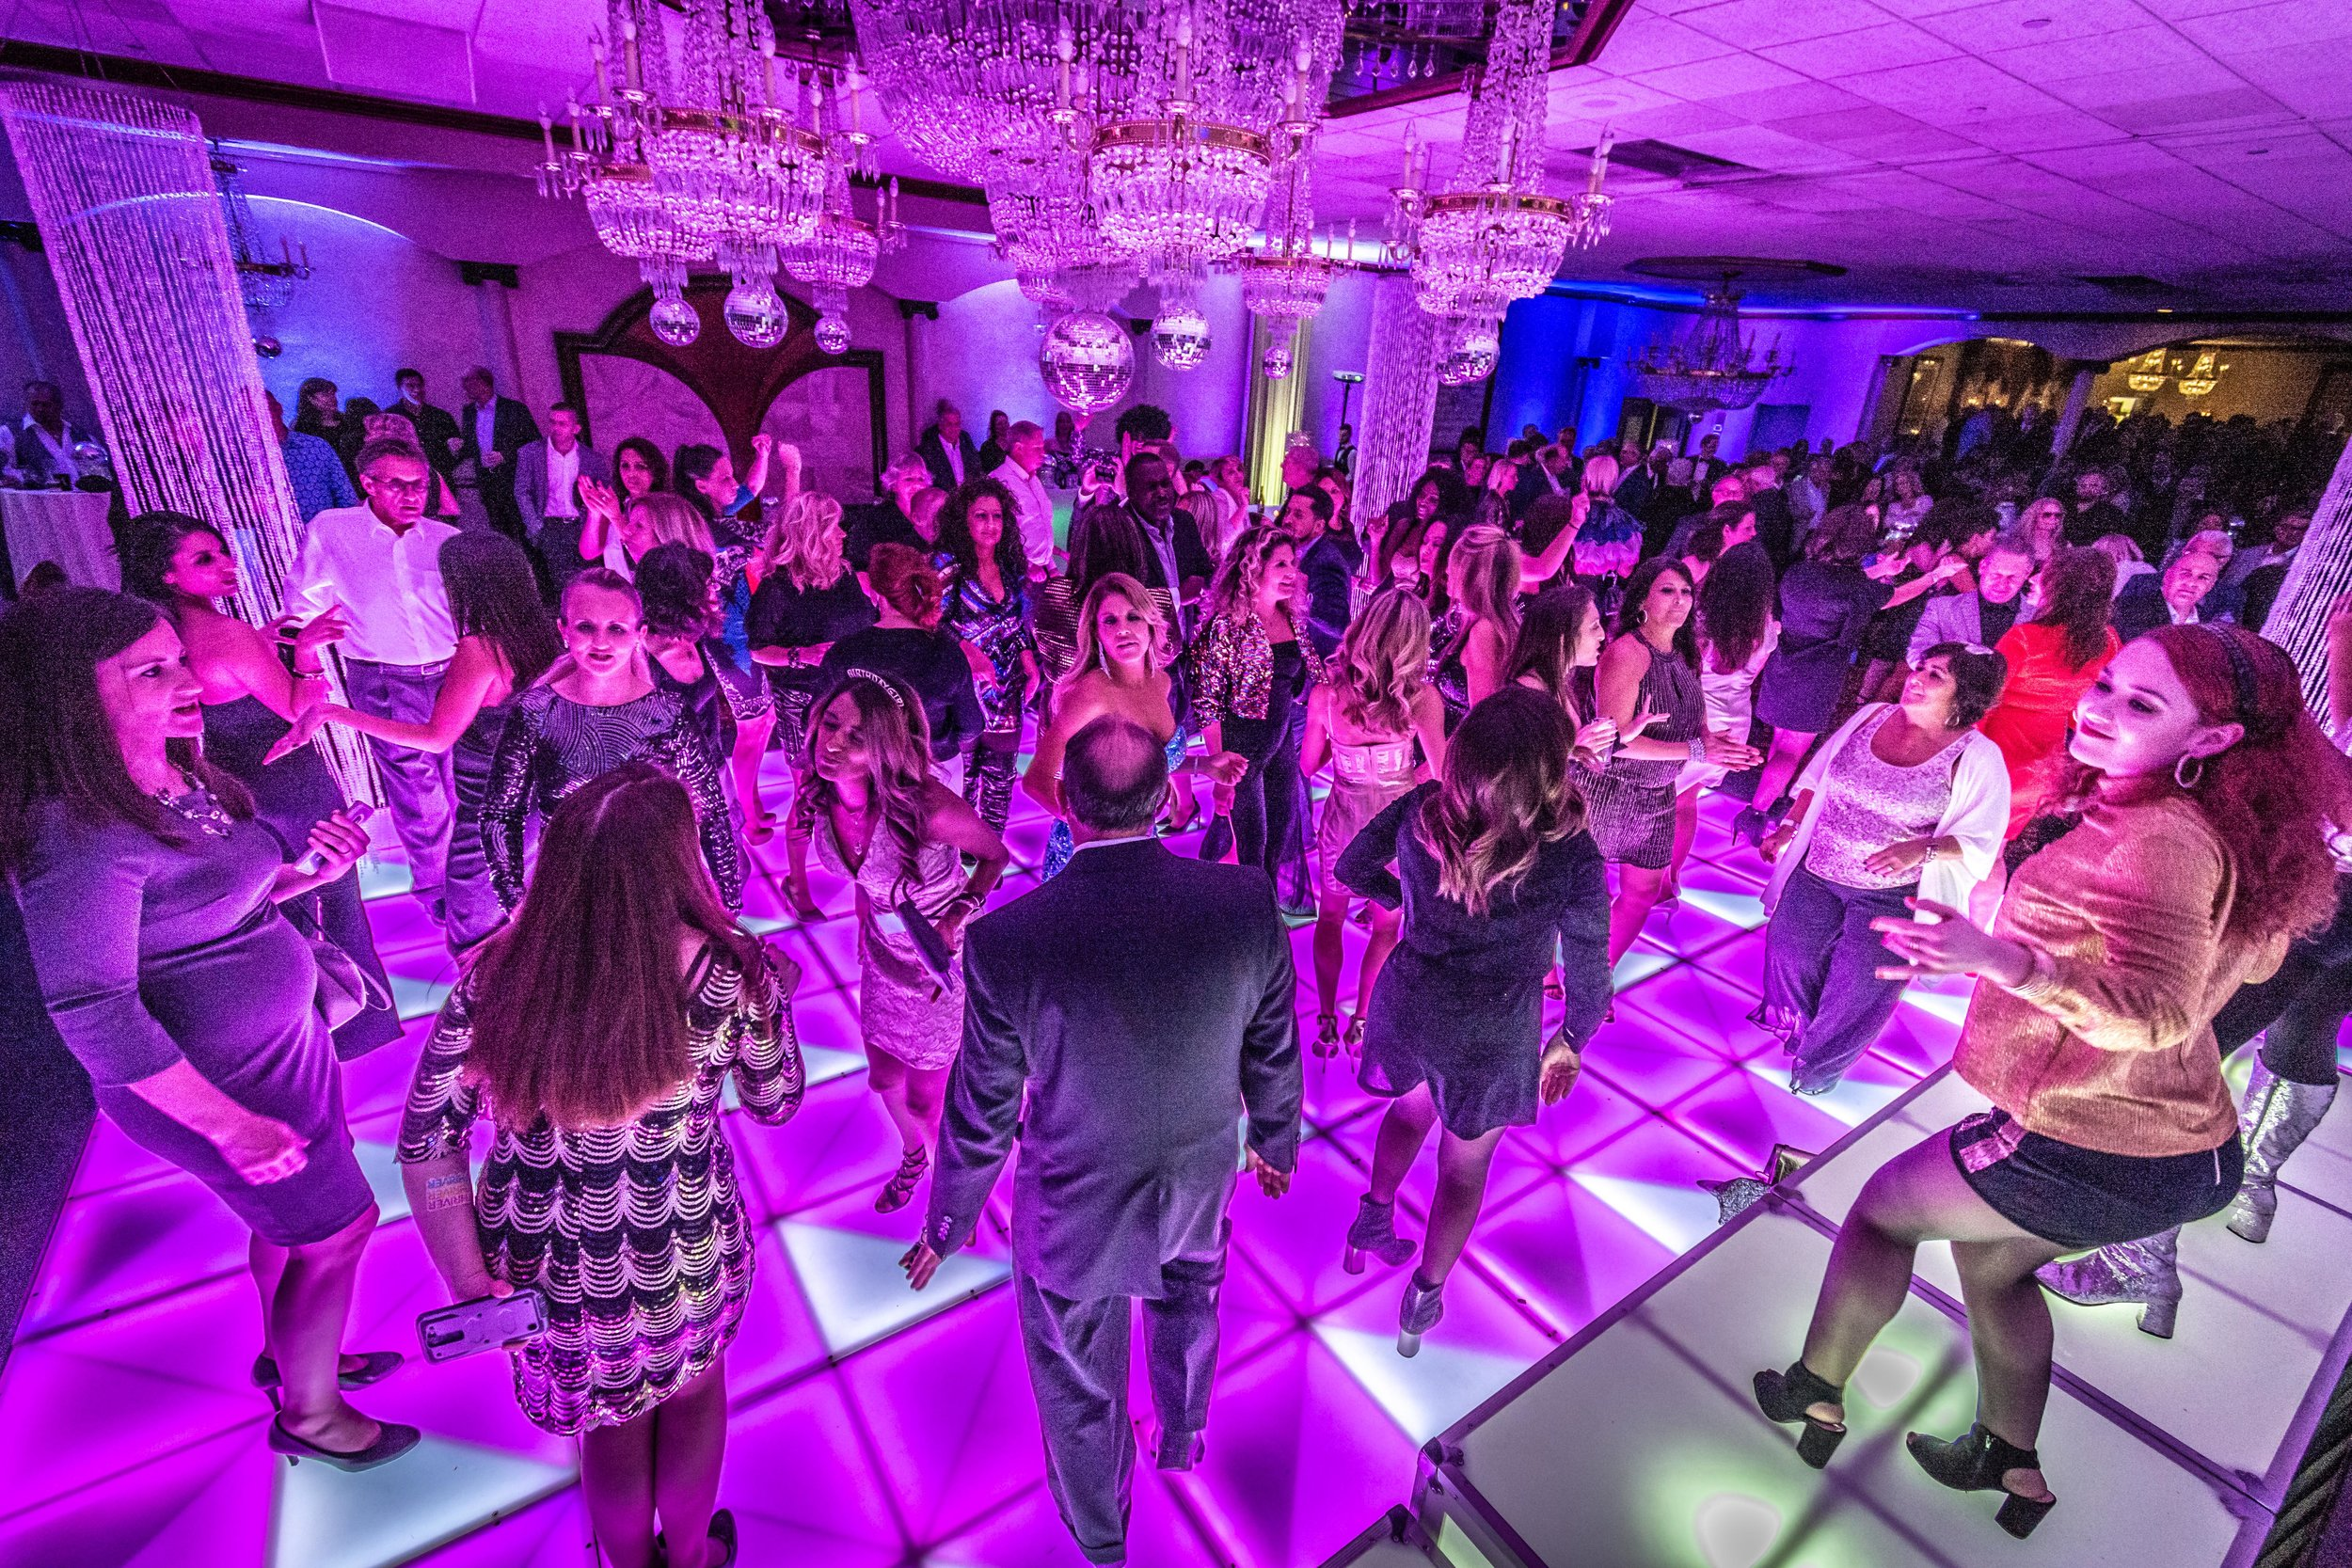 LED Dance Floor Purple.jpg